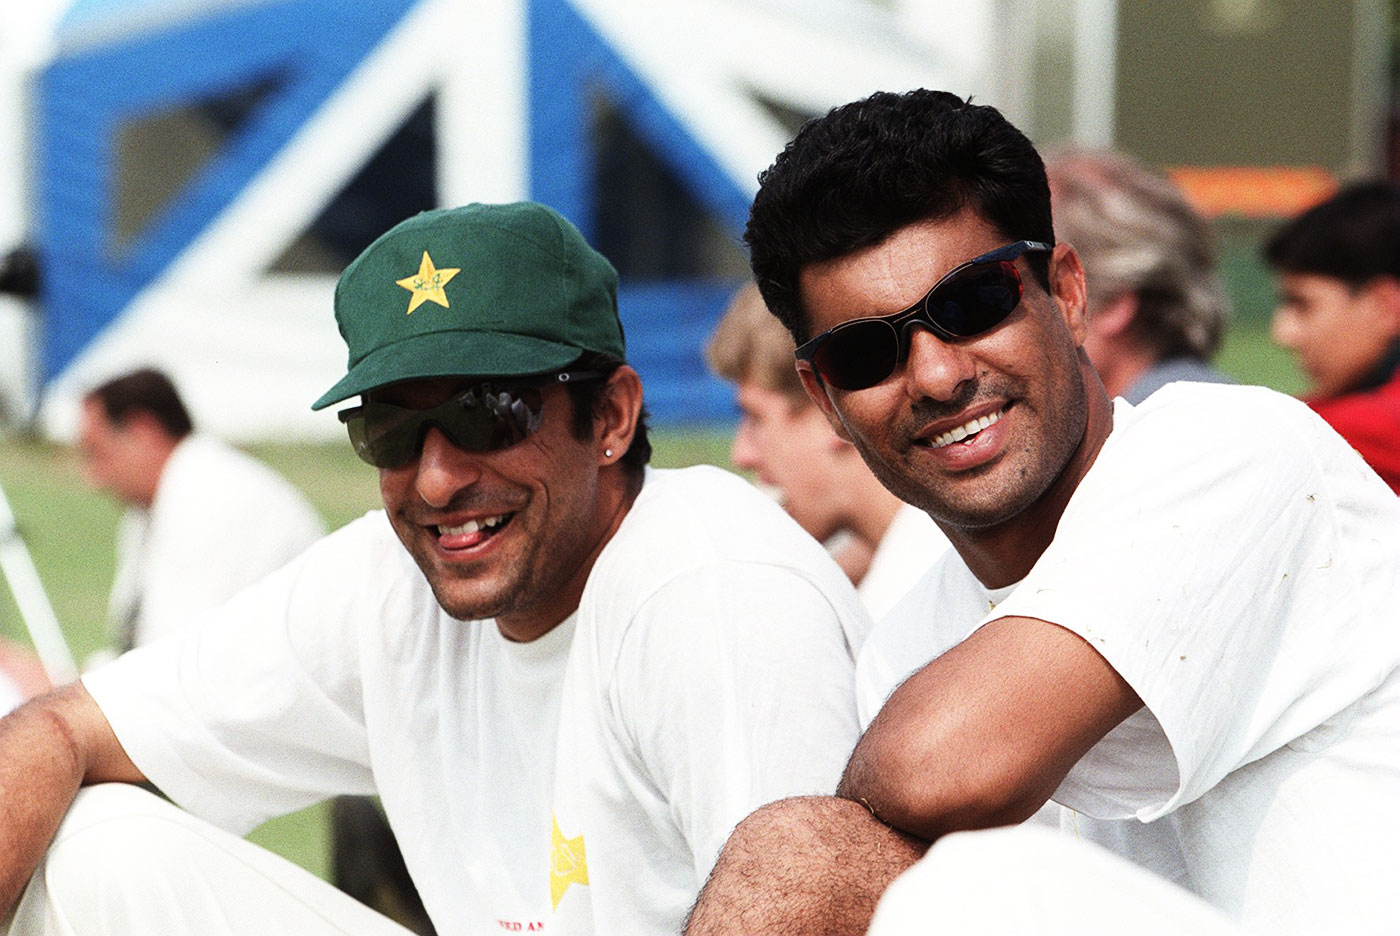 Wasim Akram and Waqar Younis relax